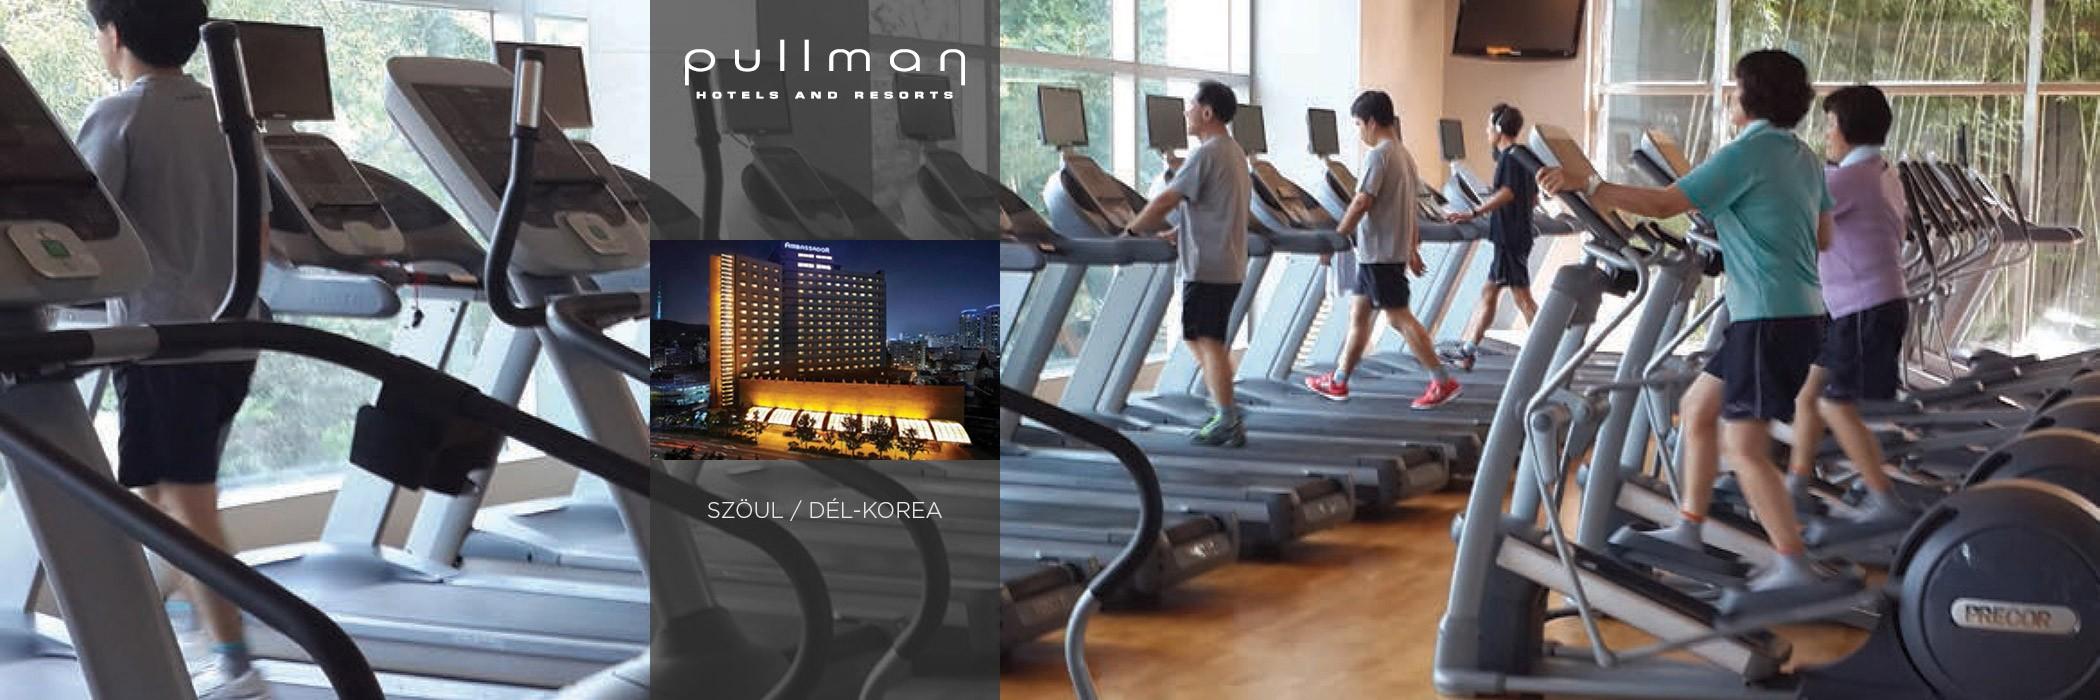 Pullmann Hotels and Resorts - Szöul / Dél-Korea